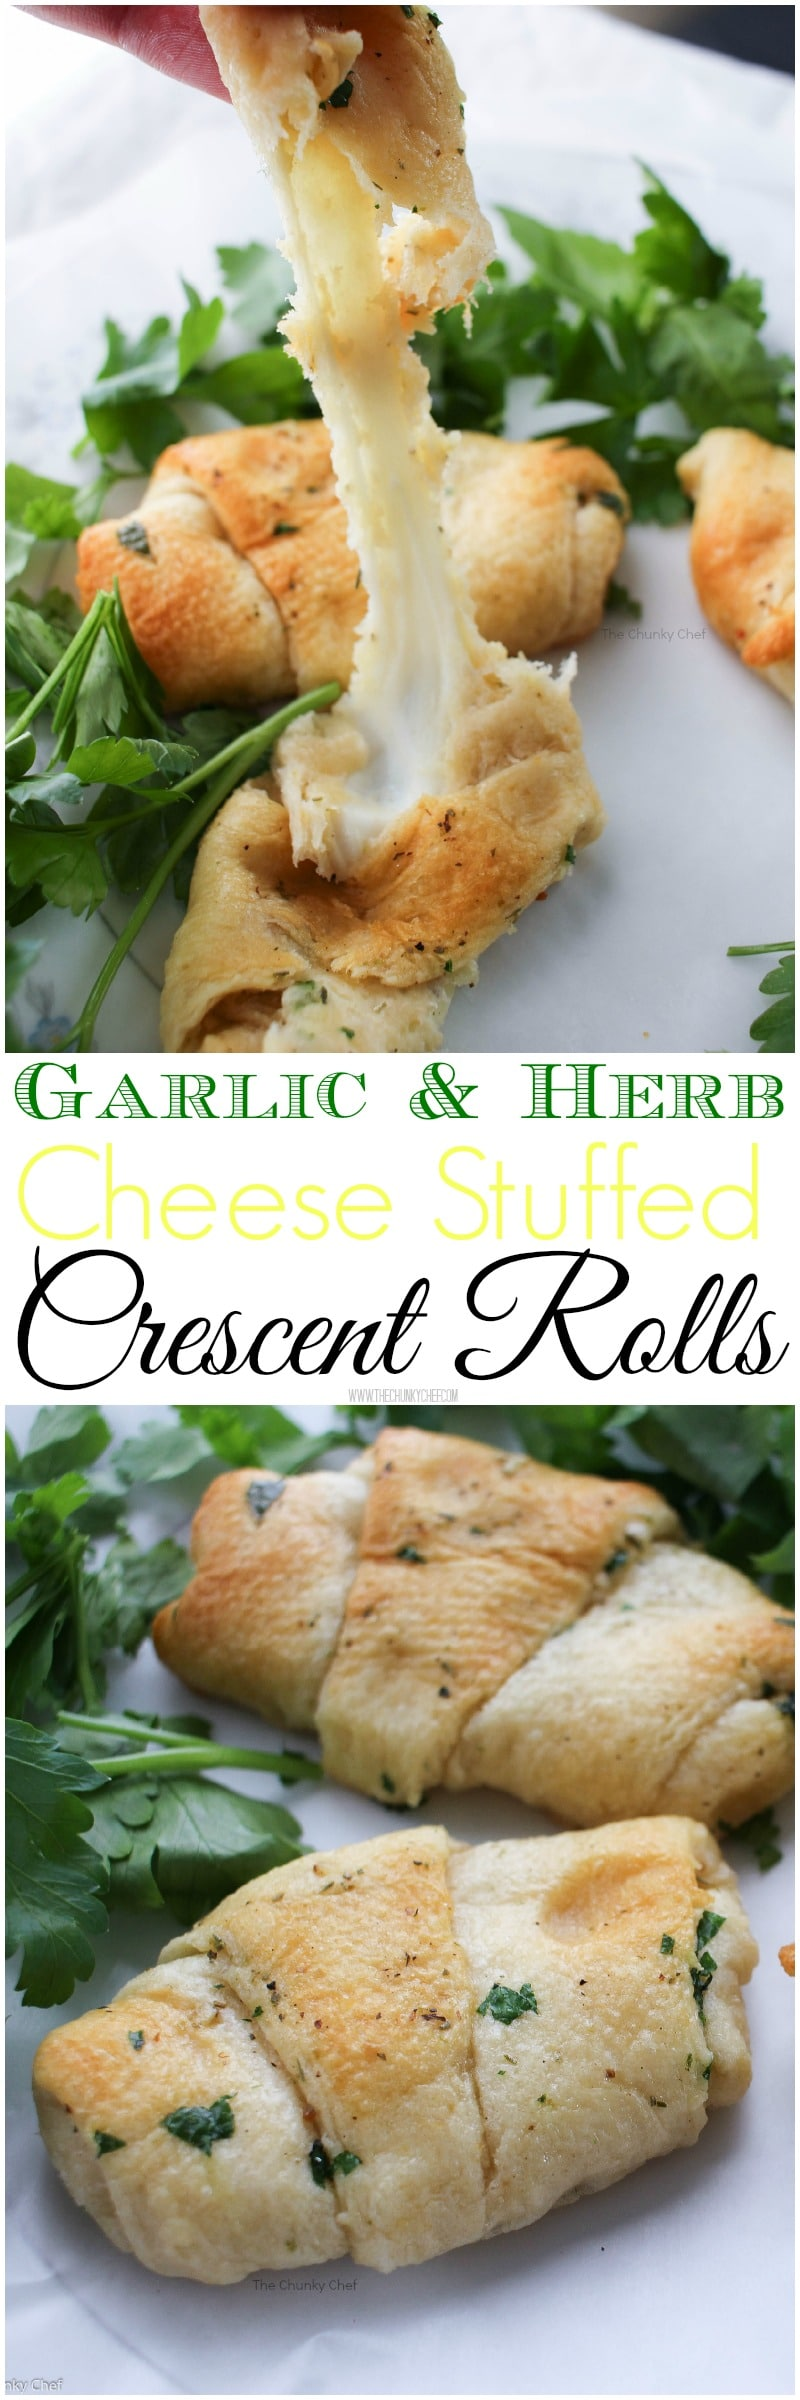 Garlic and Herb Cheese Stuffed Crescent Rolls - Buttery, rich, garlicky and full of fresh herbs and delicious mozzarella cheese